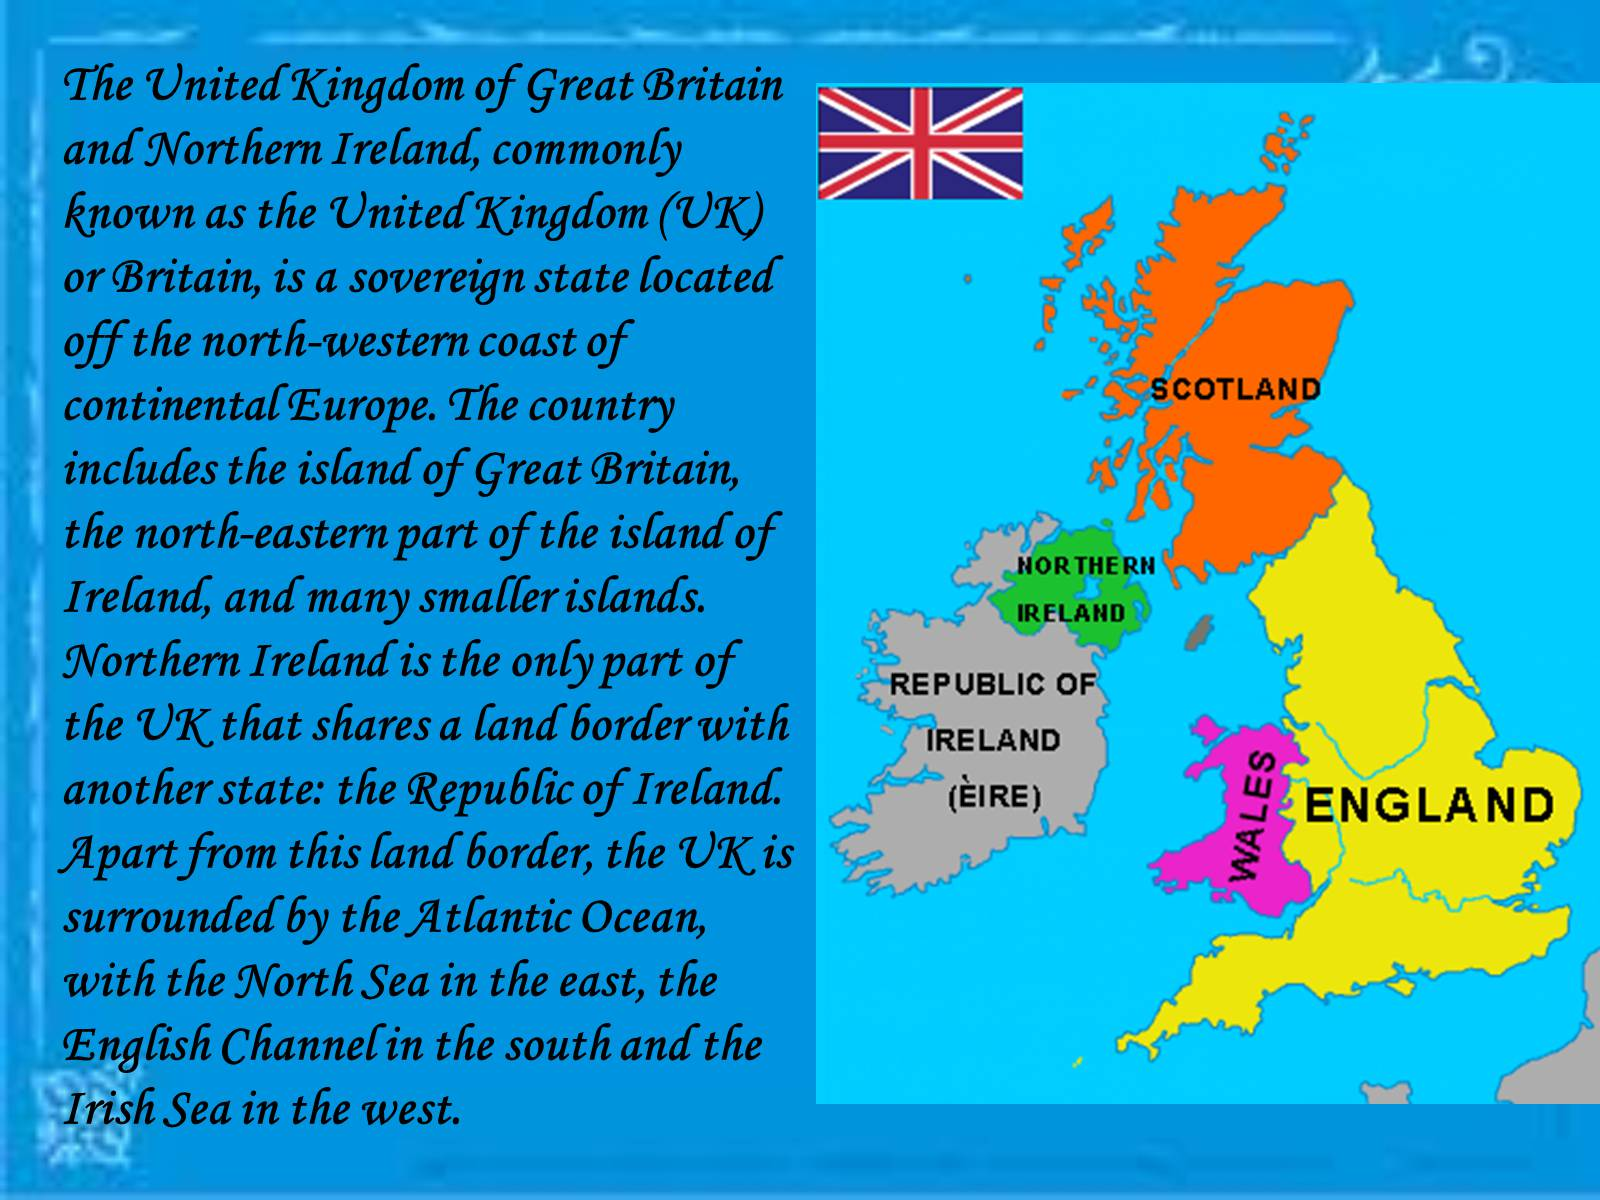 Презентація на тему «The United Kingdom of Great Britain and Northern Ireland» (варіант 2) - Слайд #2